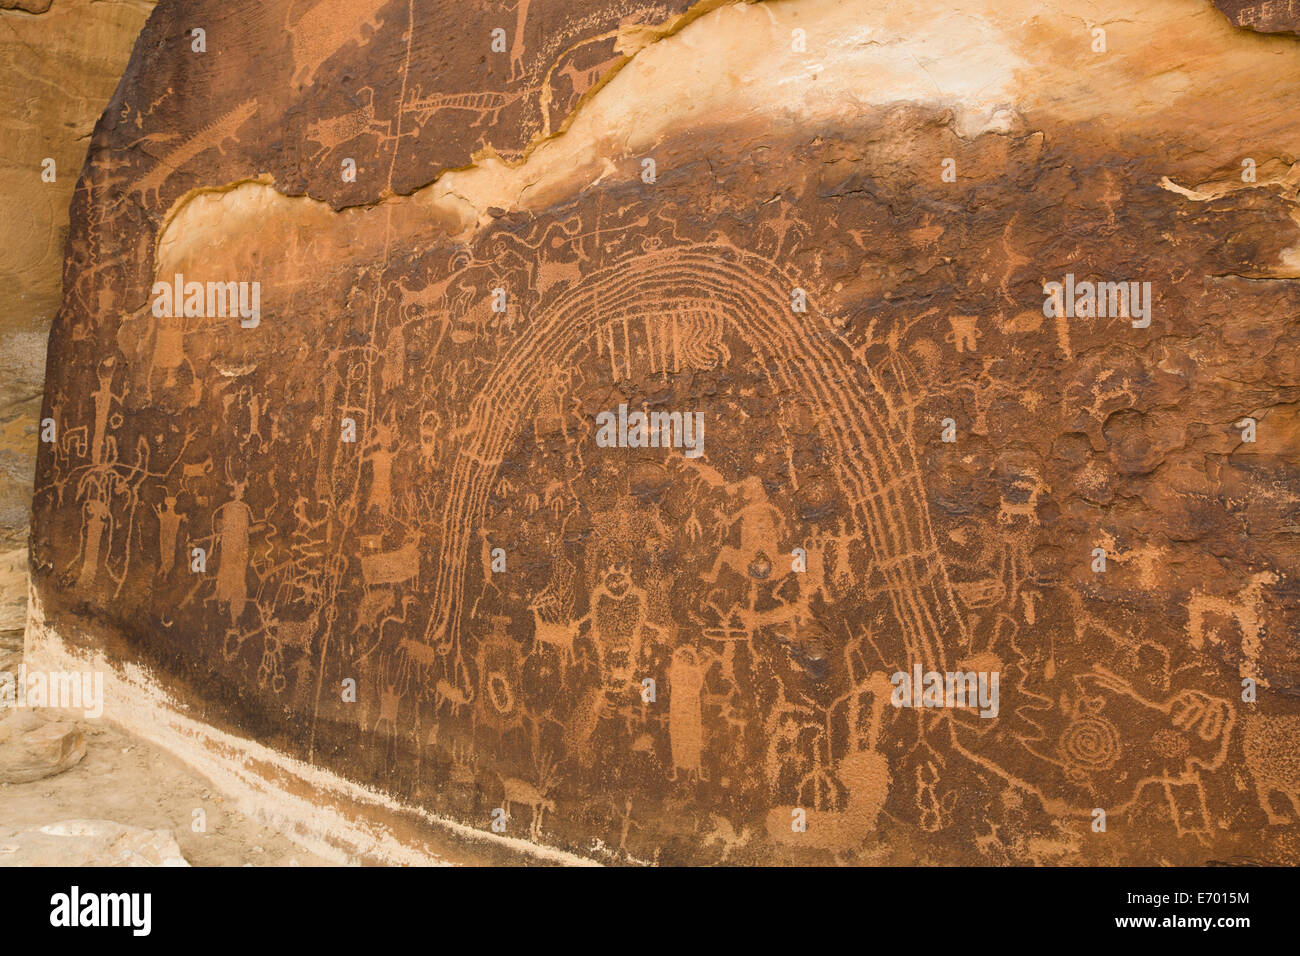 USA, Utah, near Emery, Rochester Petroglyph Panel, contains both Barrier Canyon style and Fremont style elements - Stock Image